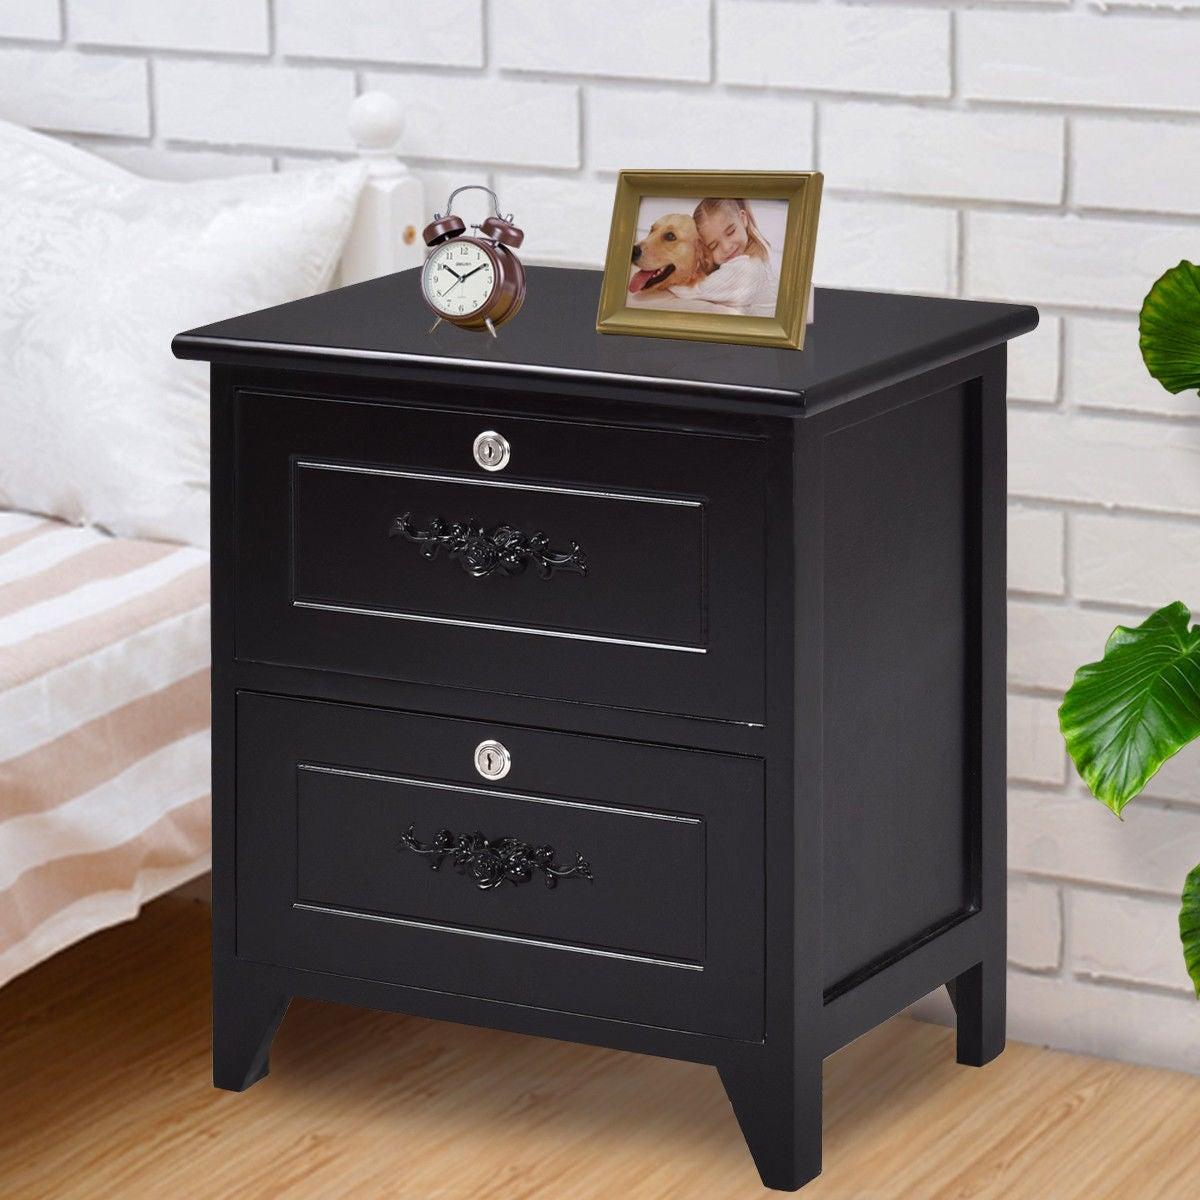 way solid wood elegant night stand locking drawer storage shelf end table black with free shipping today brown sofa grey walls oval shaped coffee large portable dog crate round